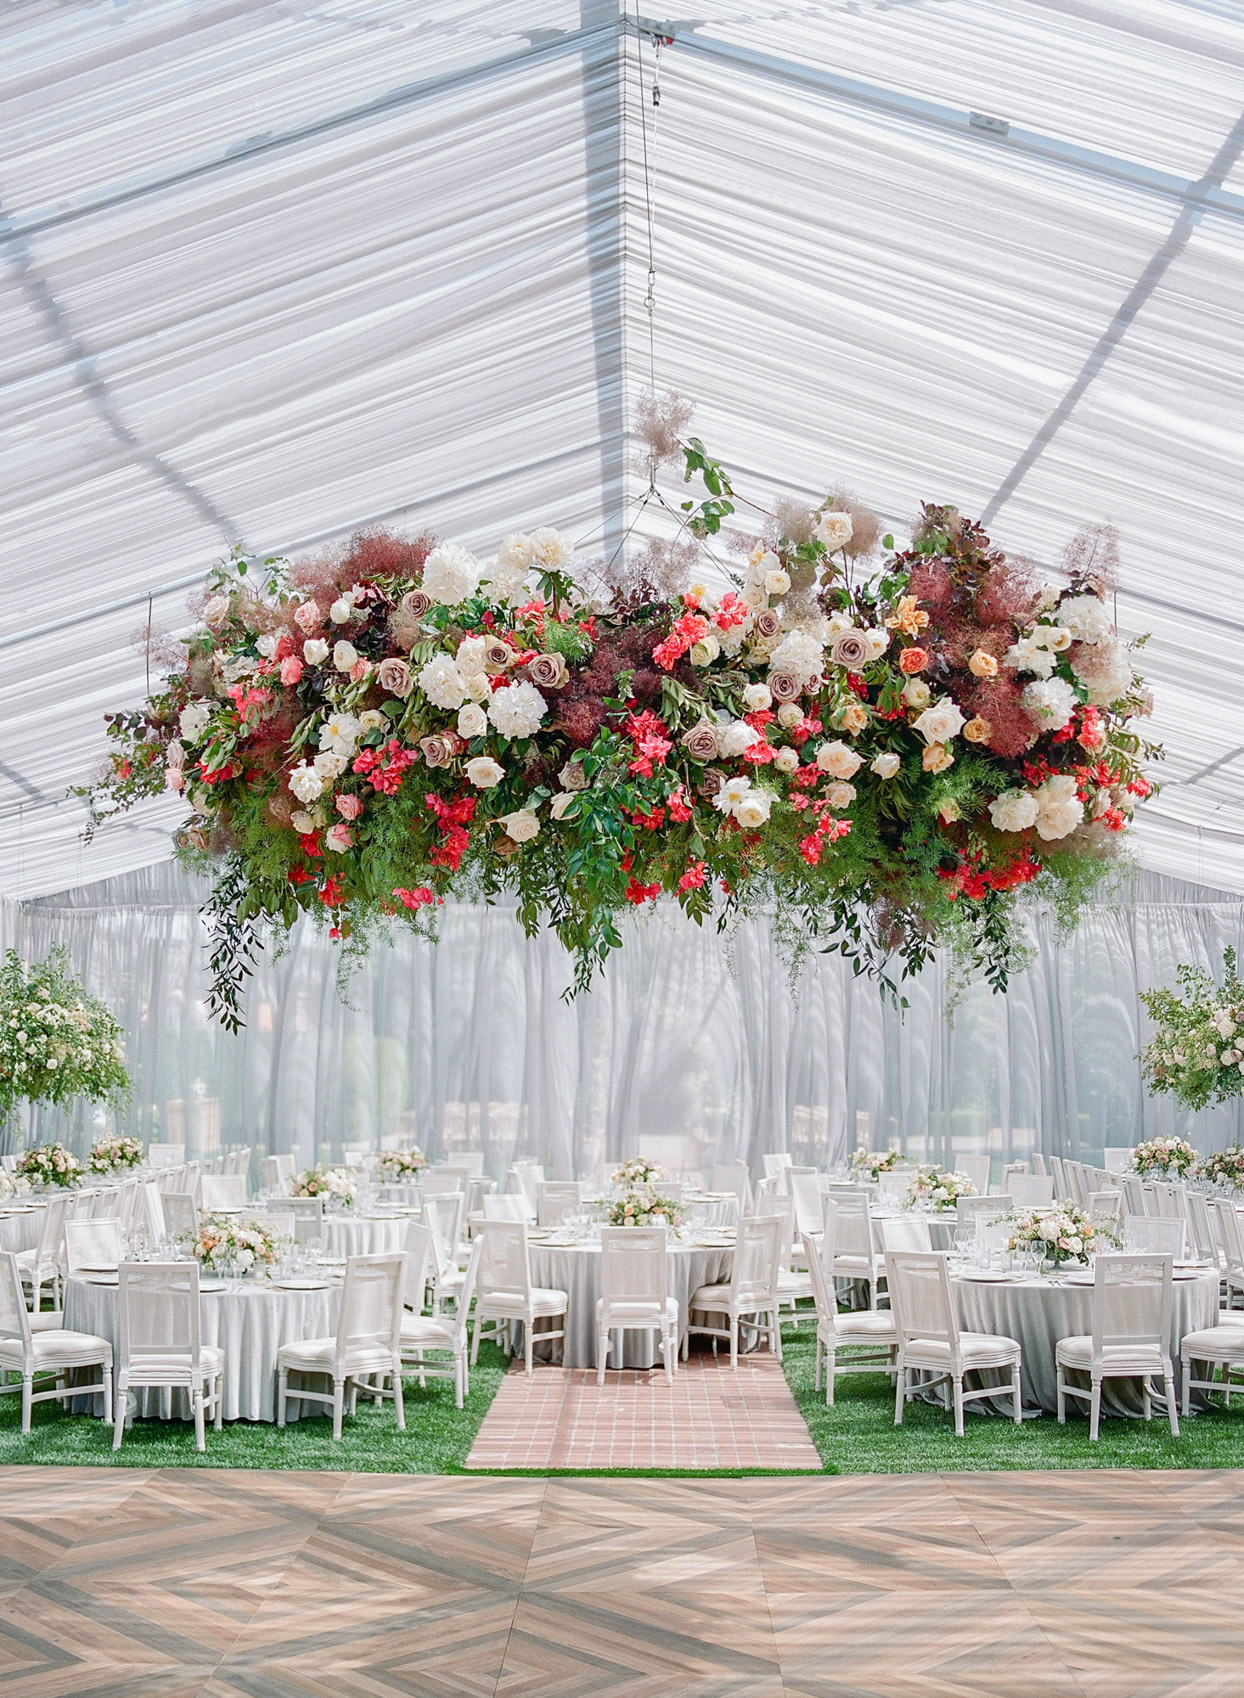 reception tables under canopy set with flowers